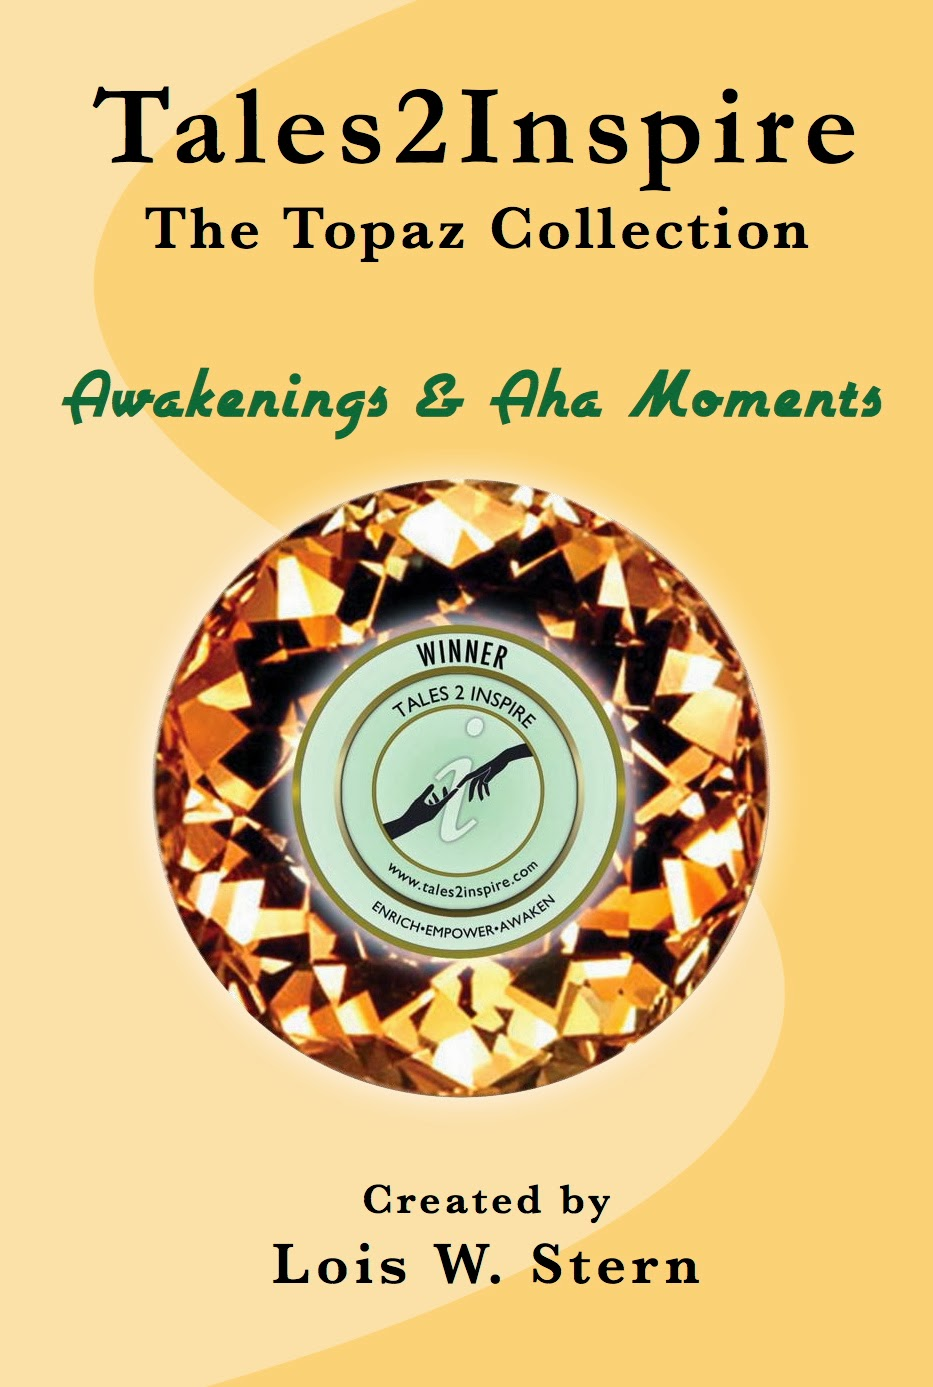 http://www.amazon.com/Tales2Inspire-Topaz-Collection-Awakenings-Moments-ebook/dp/B00GNL1W5C/ref=la_B005HOO640_1_2?s=books&ie=UTF8&qid=1394517941&sr=1-2